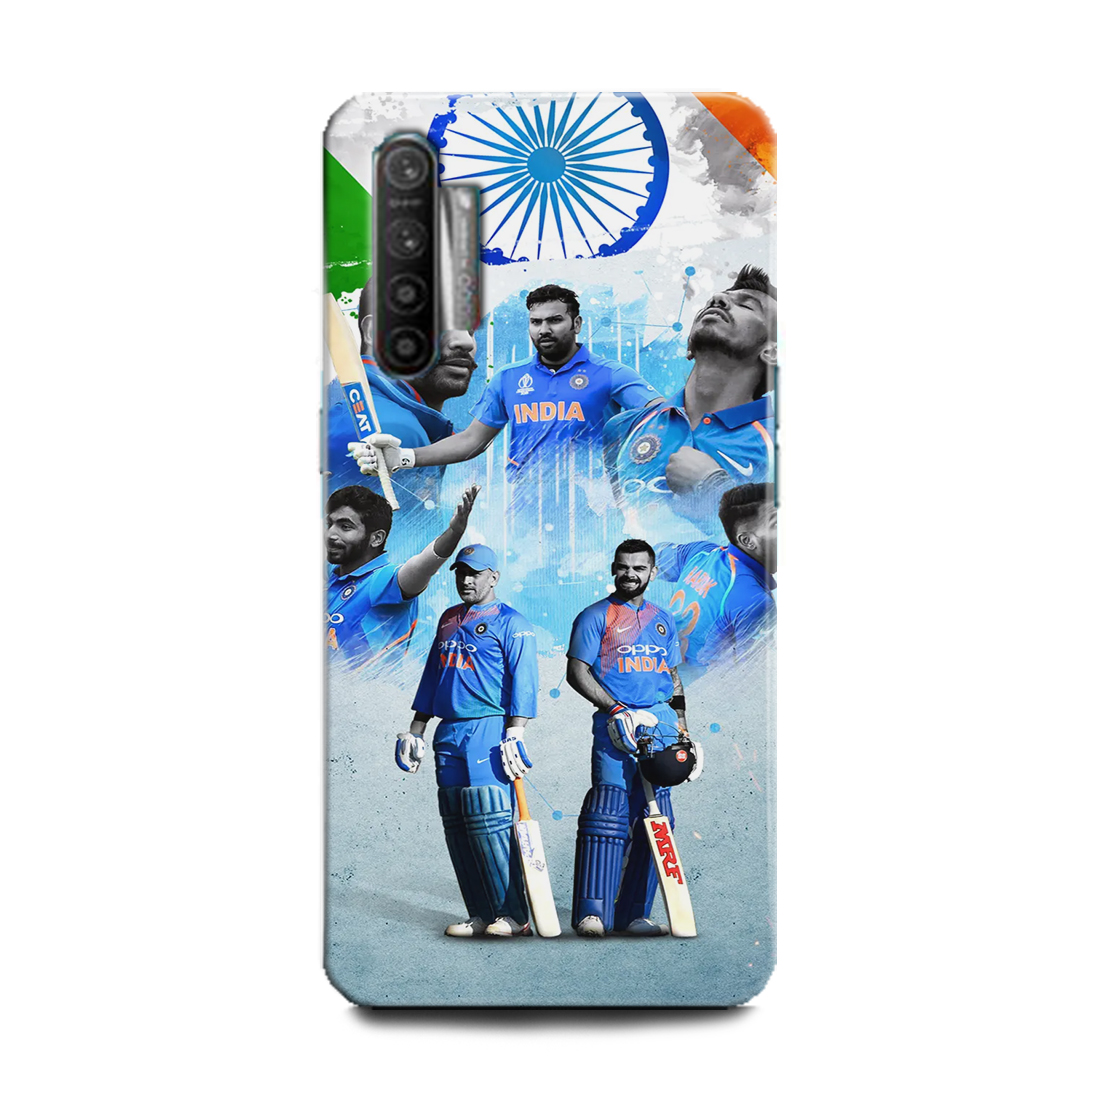 INDICRAFT Mobile Back Cover For Realme XT Hard Case (Crickete, India, Jersey, Dhoni, Virat Kohli, Rohit Sharma, Shikhar dhawan, Chahal, Hardik pandya Indian Team, Player, Sports, RMX1921) (AB-RealmeXT-0753)